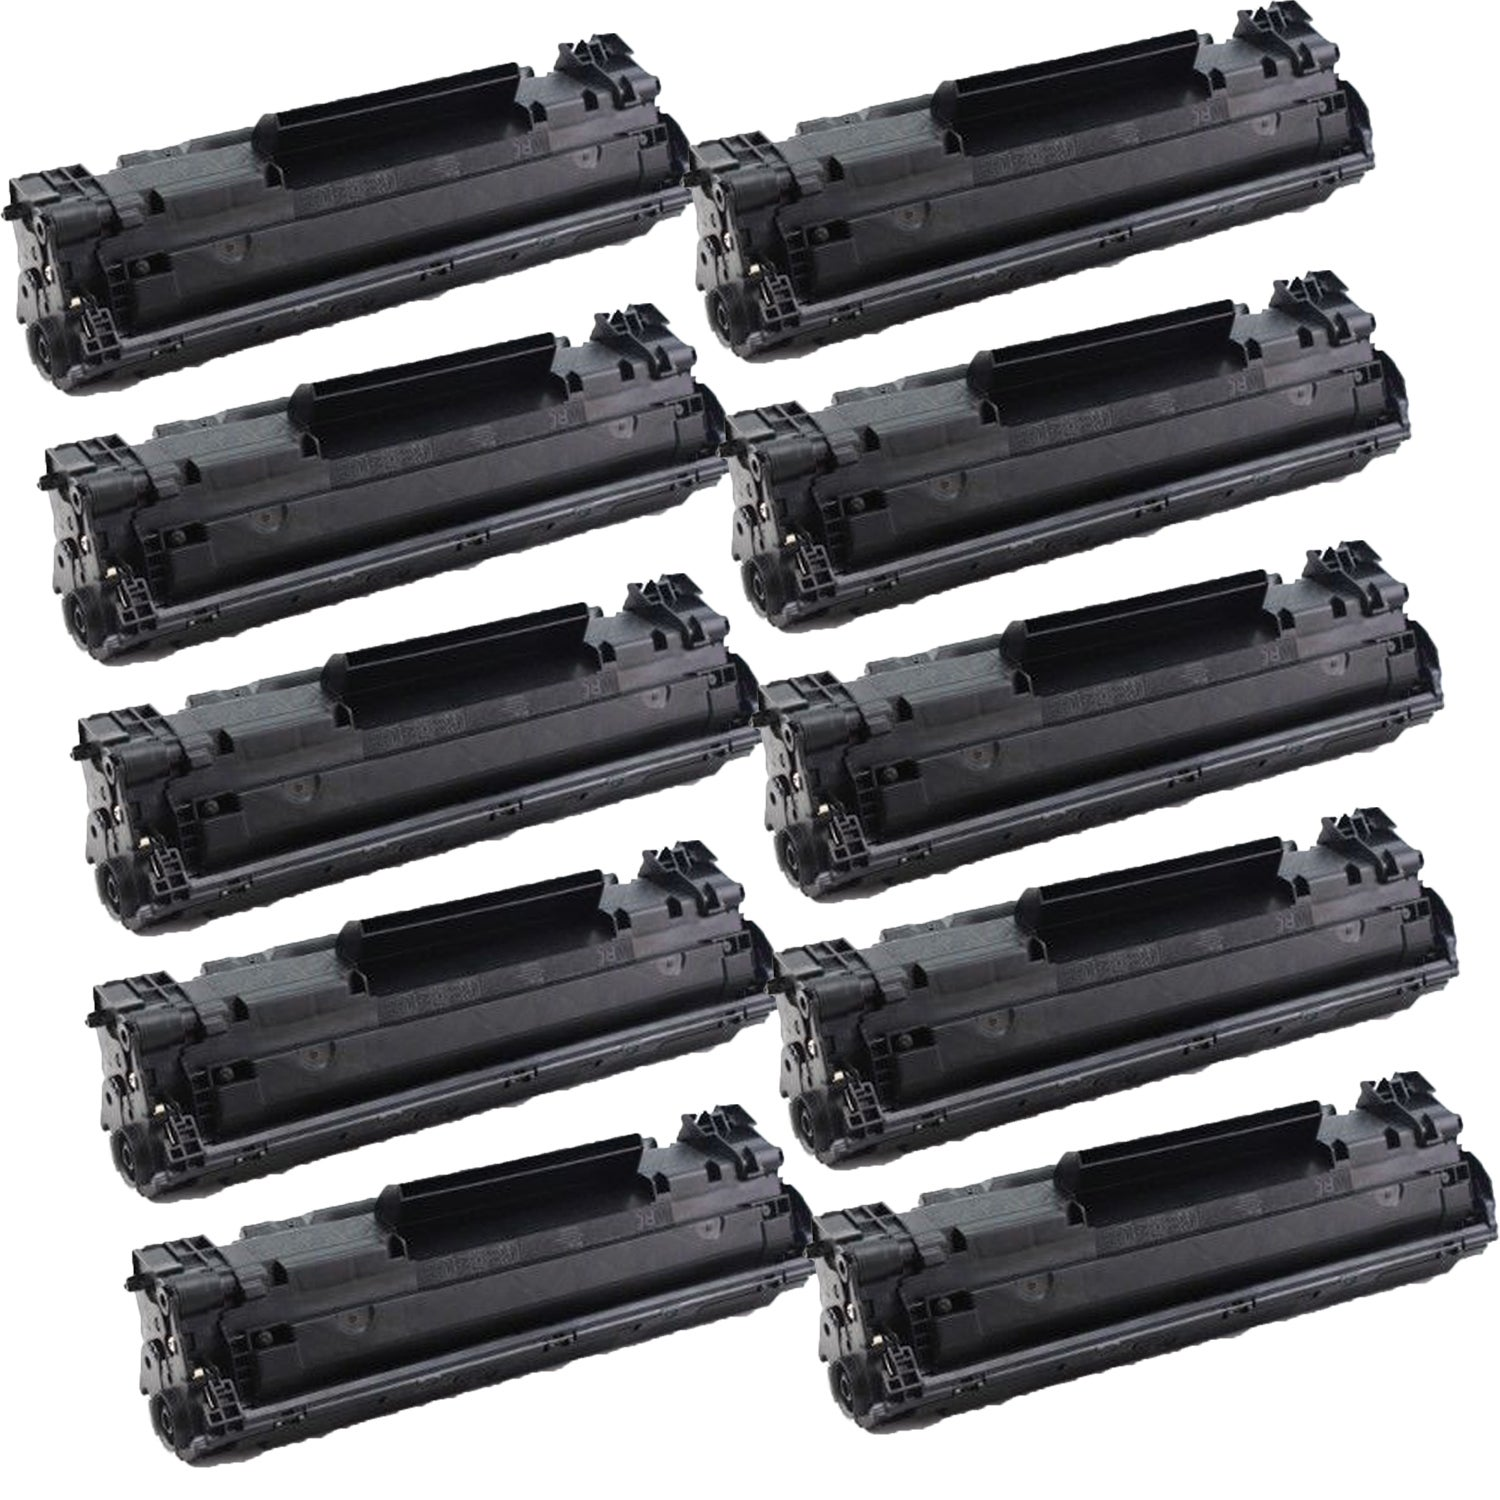 Shop 10 Pack Compatible Cf283a 83a Toner Cartridges For Hp Laserjet Cartridge Mfp M125 M127fn Pro M125nw M127 M127w Of Black Free Shipping Today